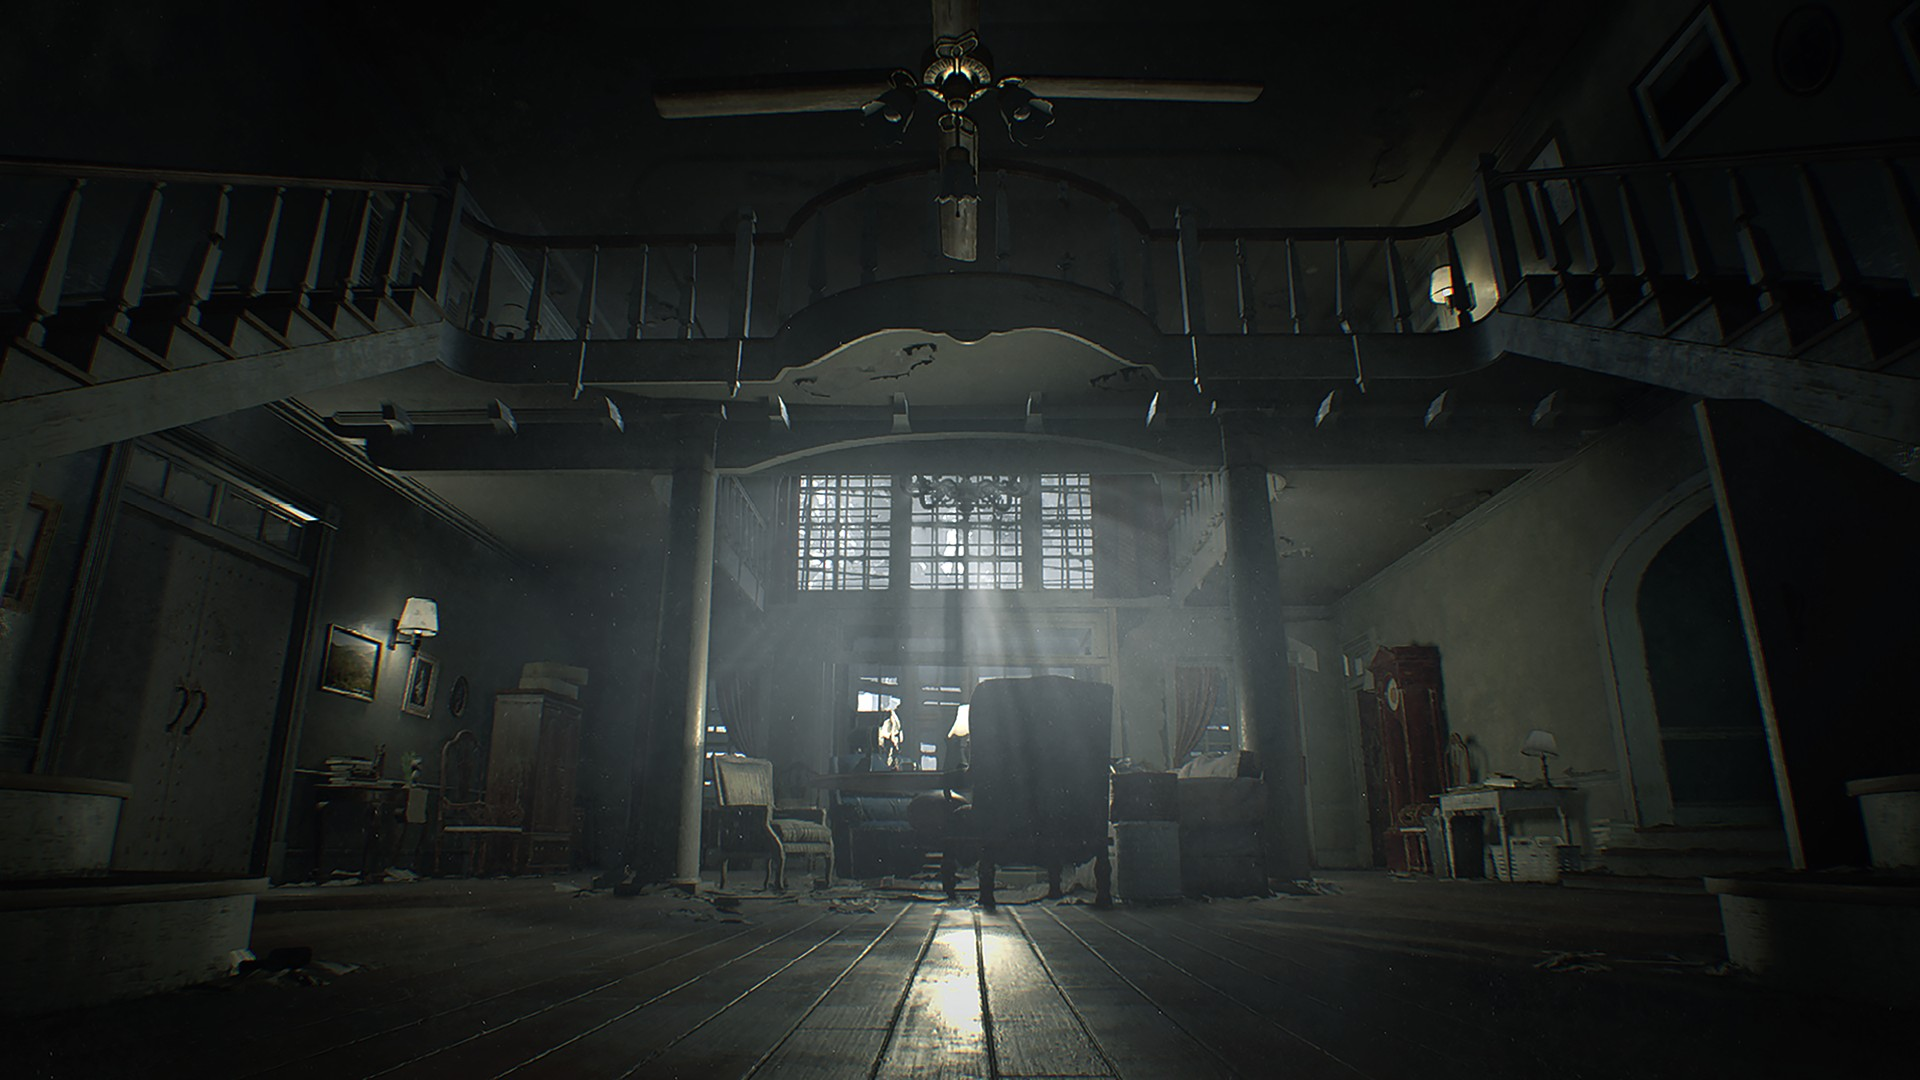 Capcom: Resident Evil 7 FOV is Capped at 90, No Plans for Ultrawide